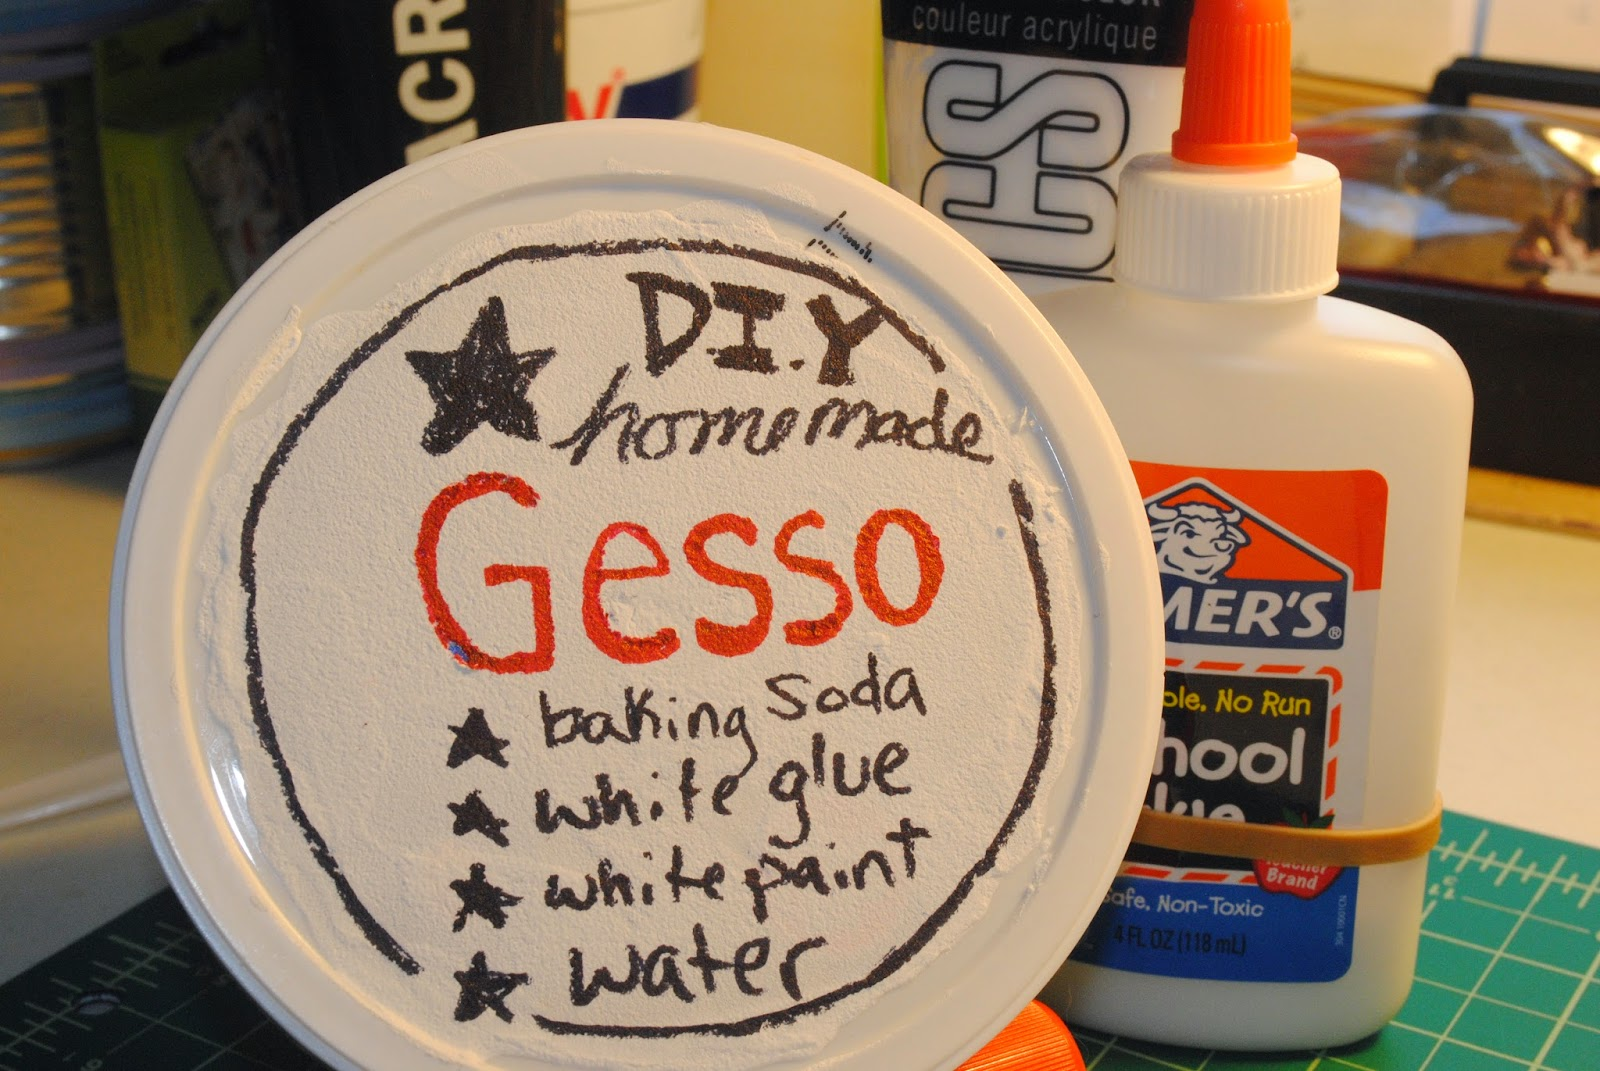 Can You Use White Paint Instead Of Gesso